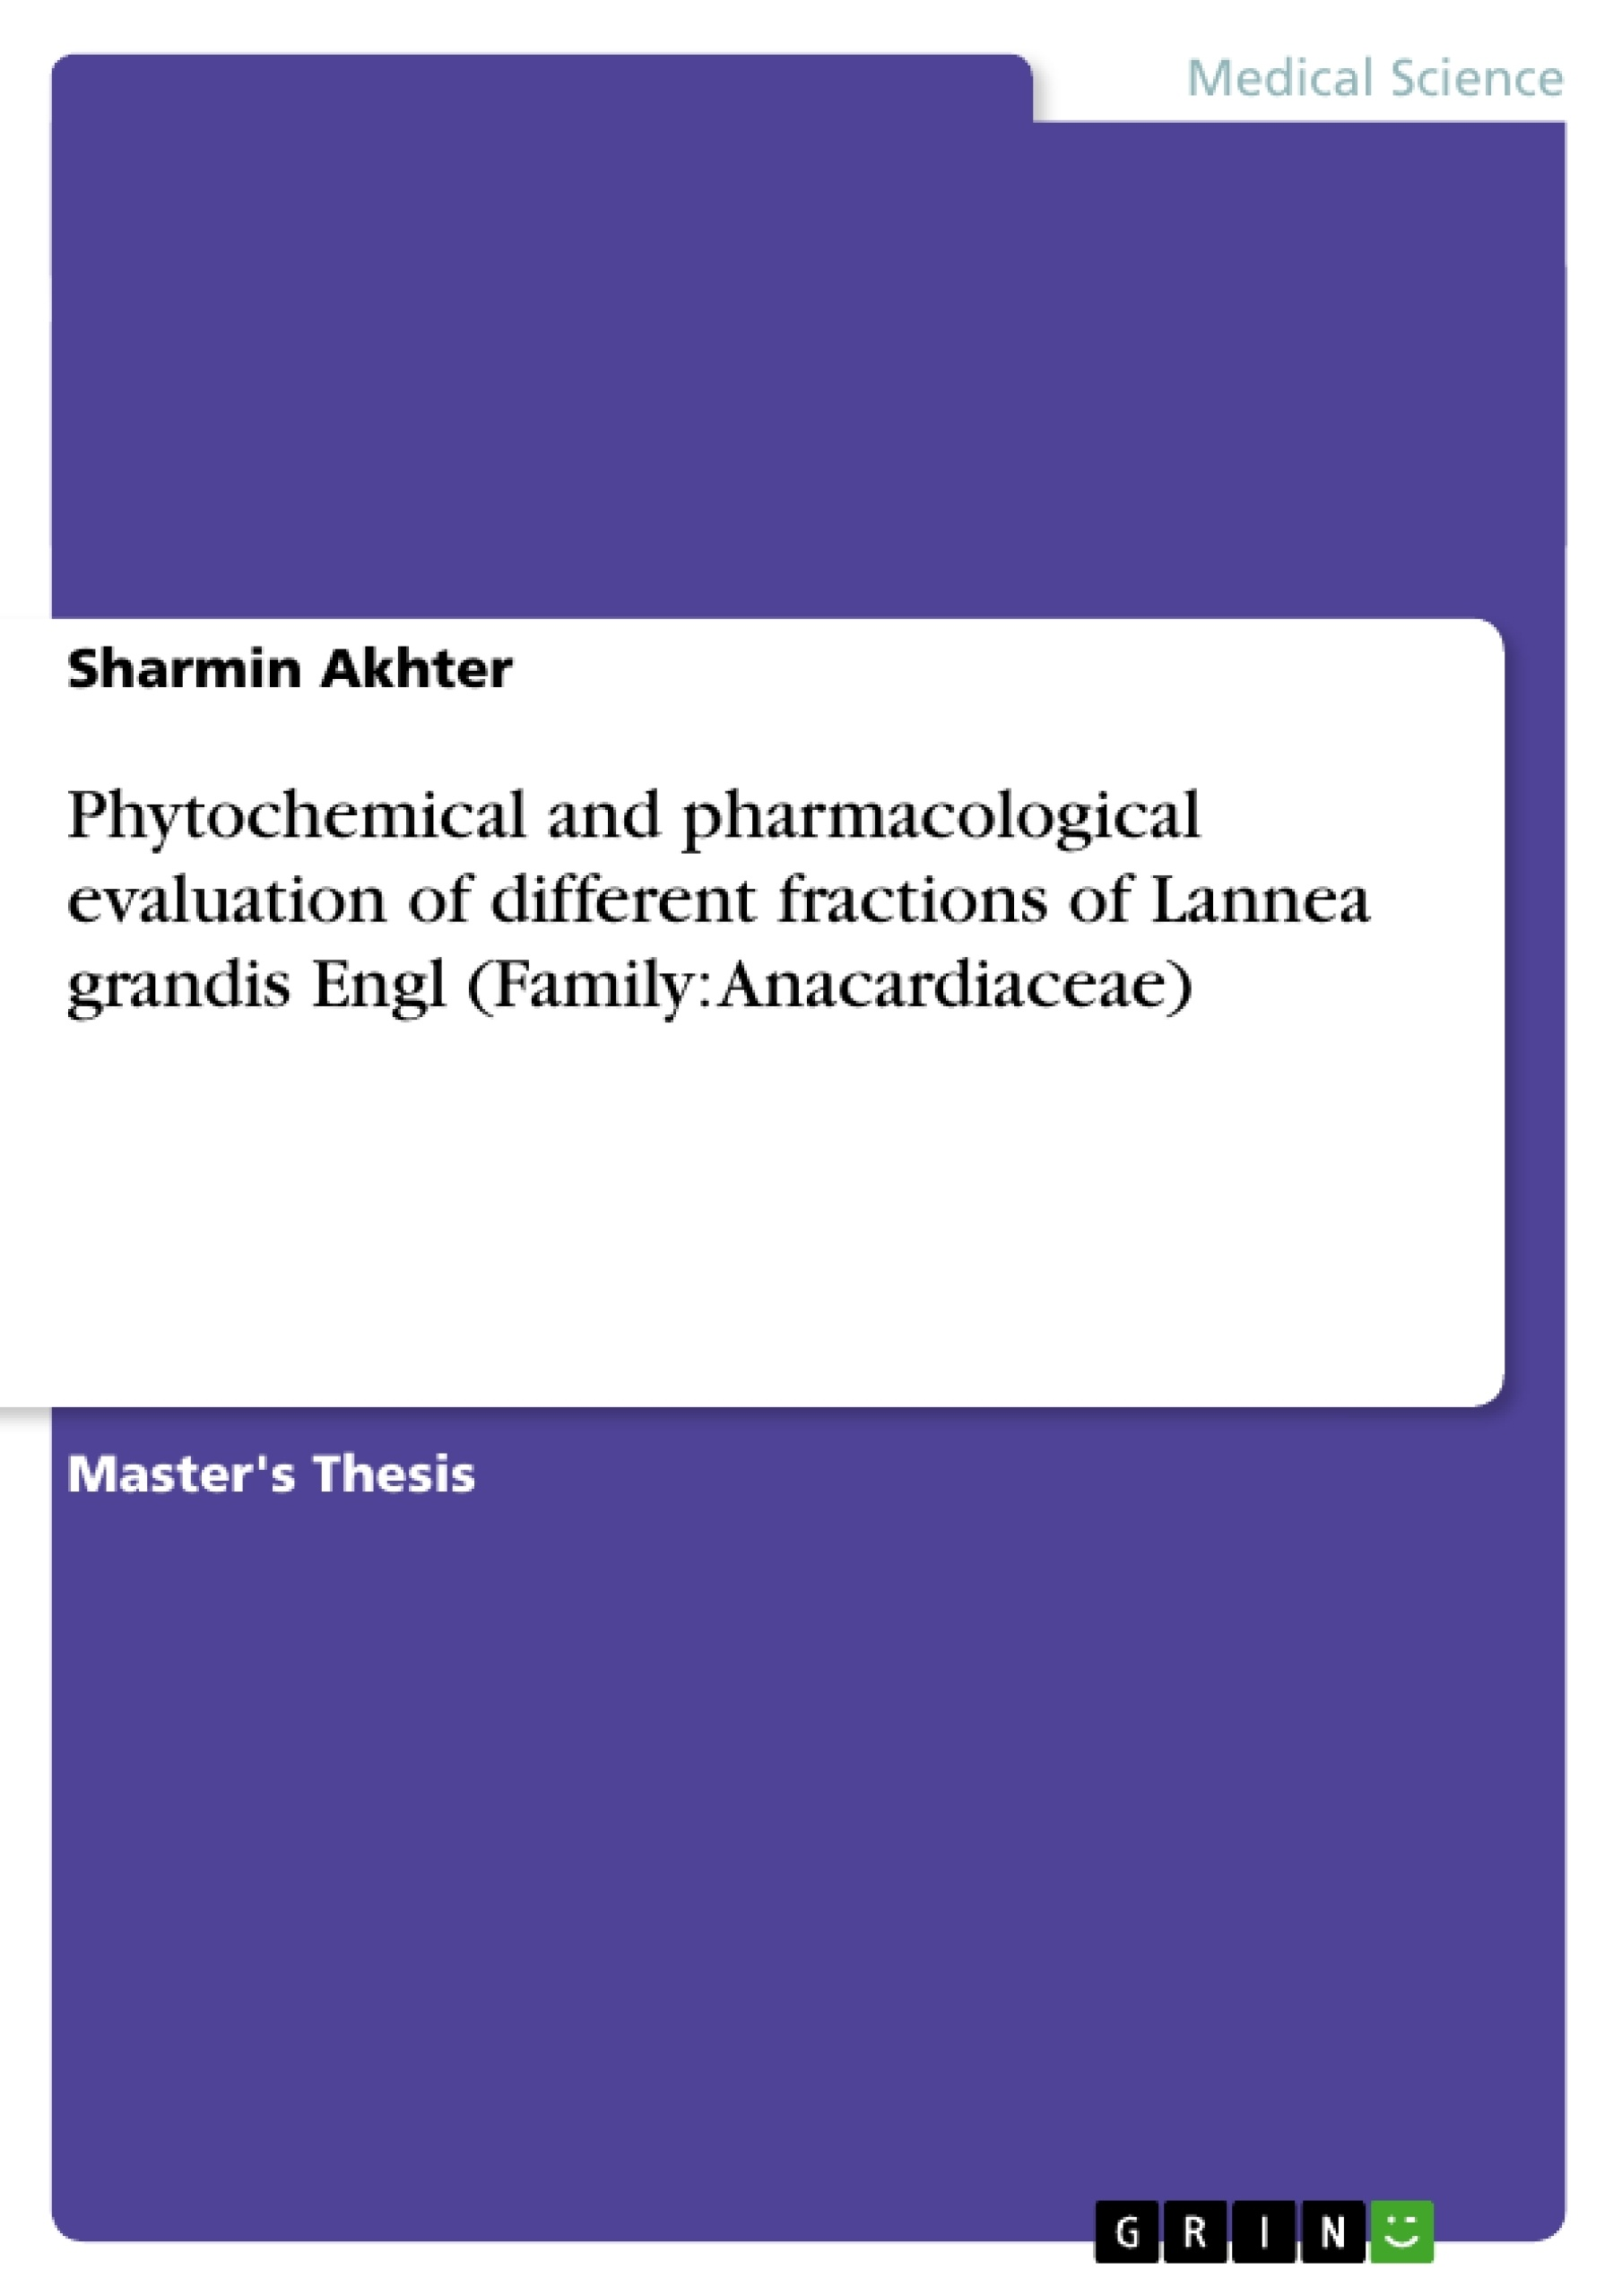 GRIN - Phytochemical and pharmacological evaluation of different fractions  of Lannea grandis Engl (Family: Anacardiaceae)